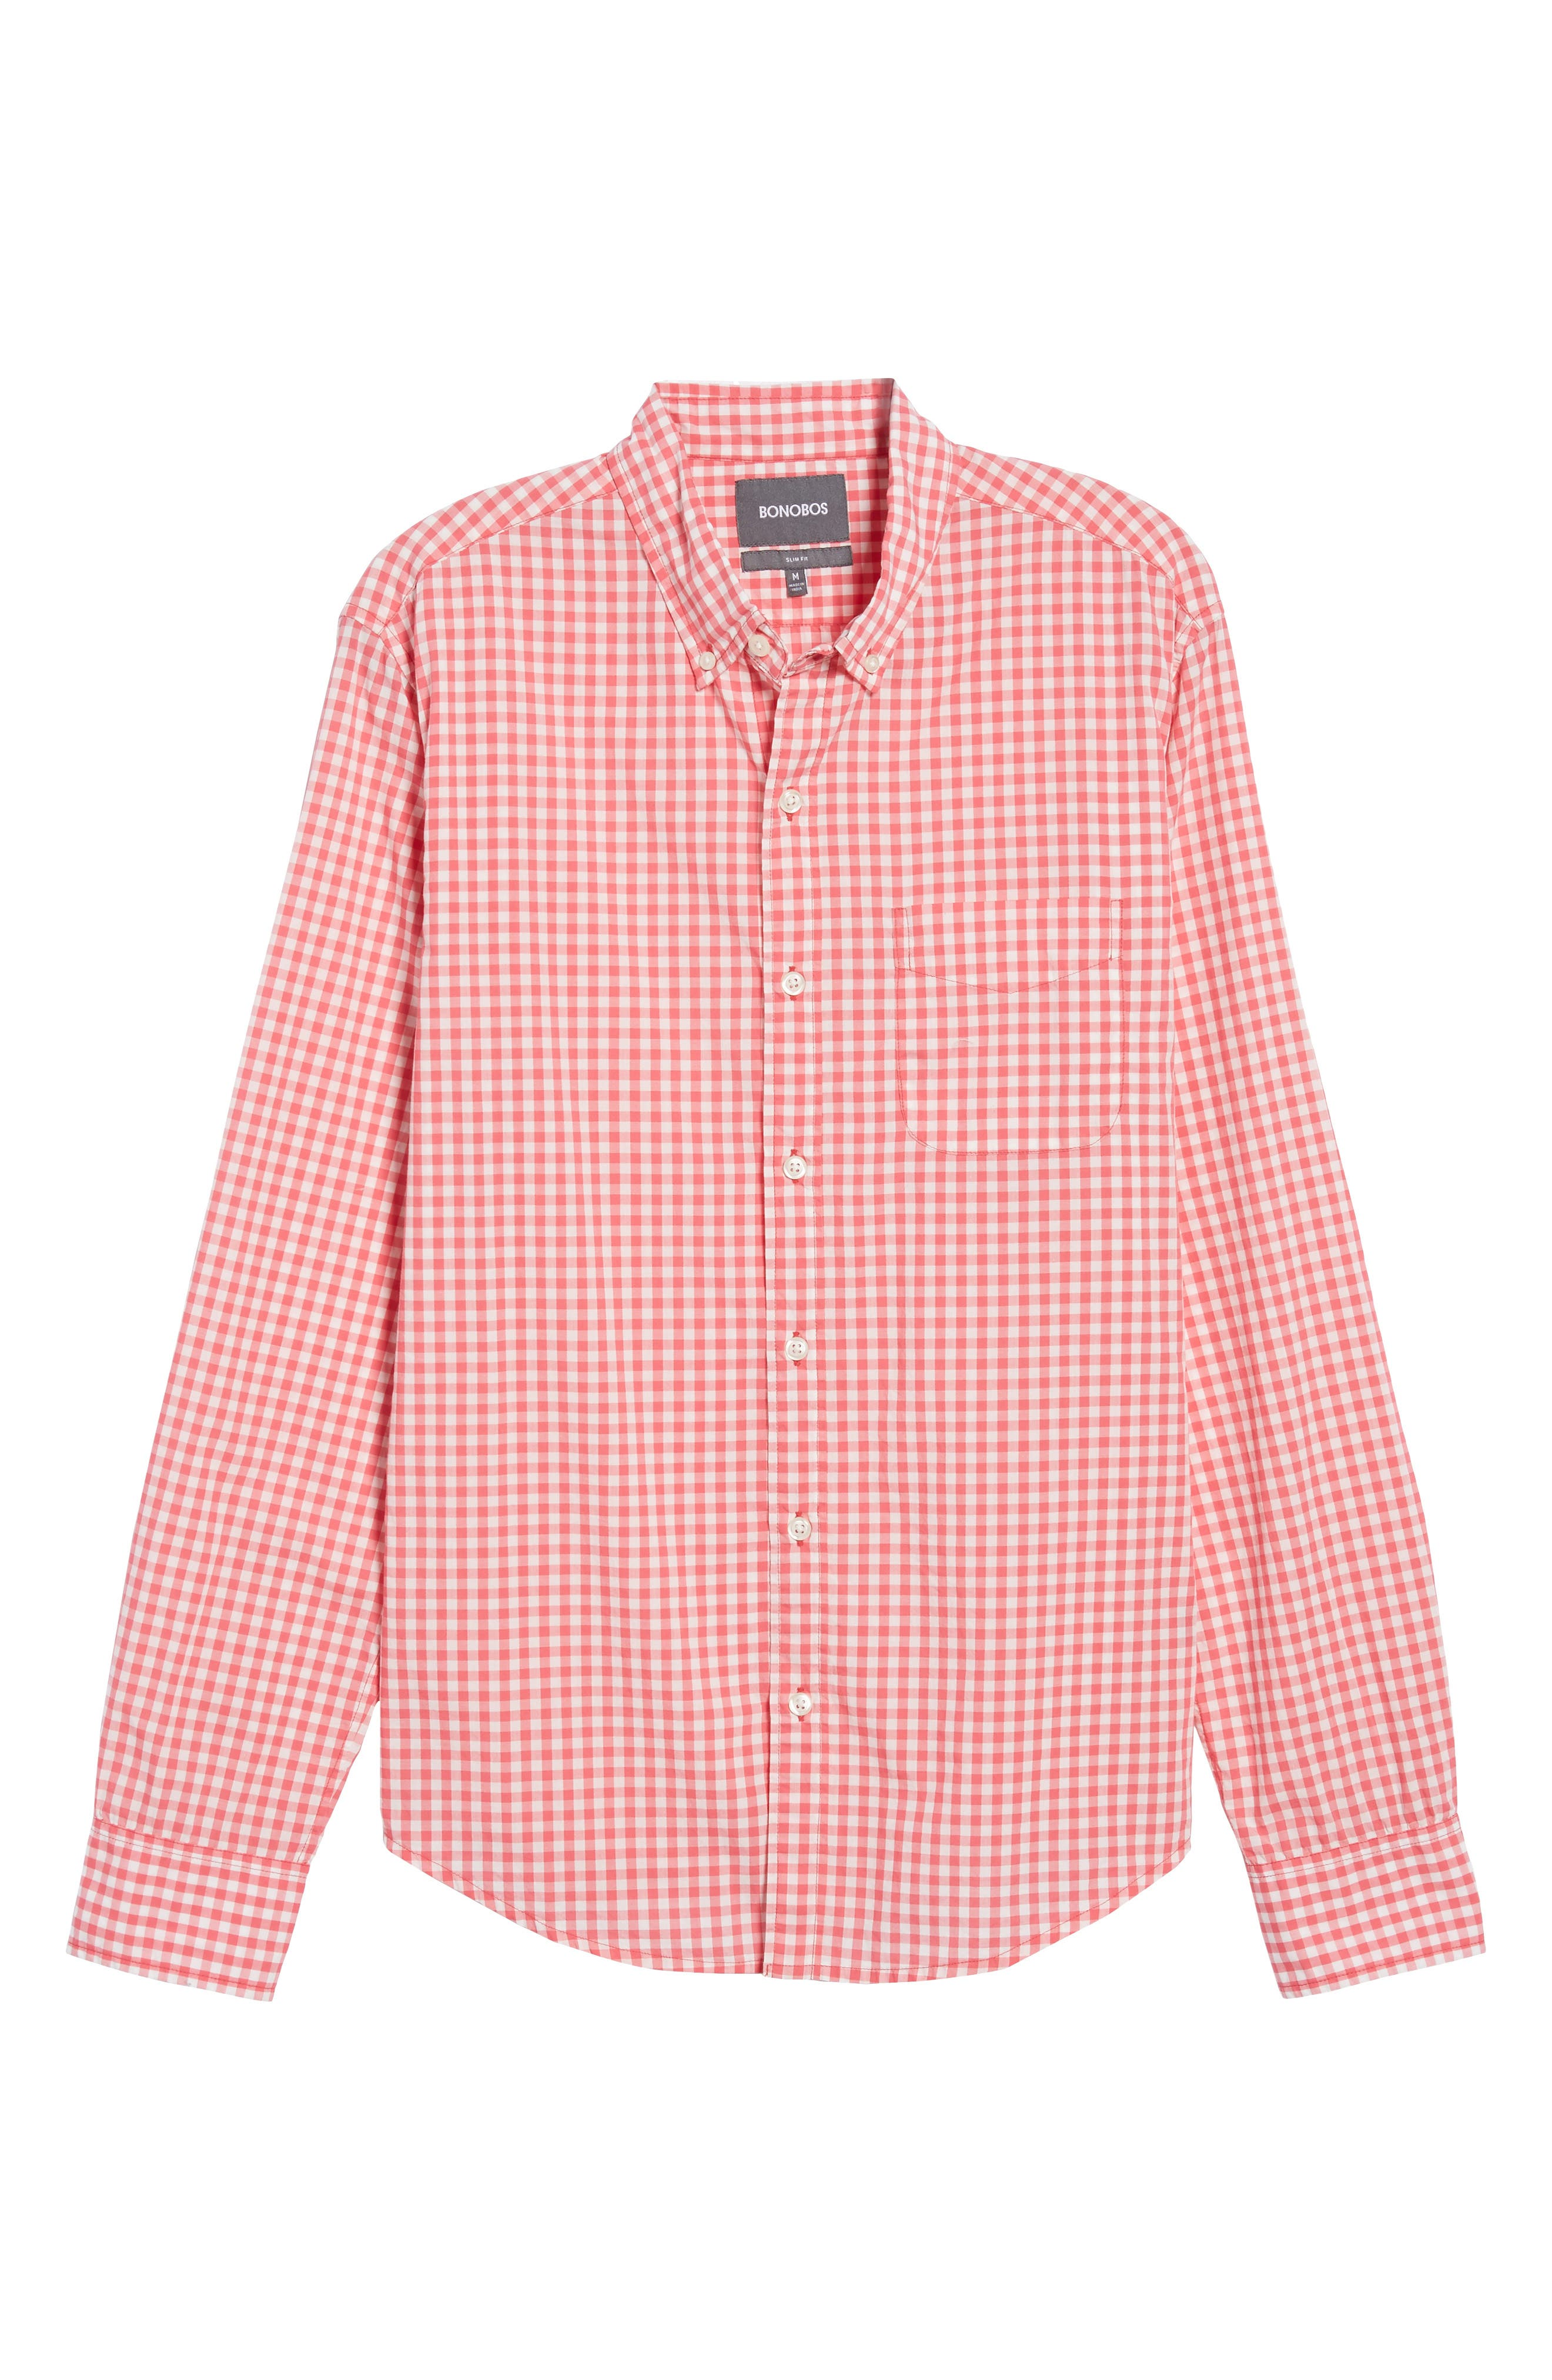 Slim Fit Summerweight Check Sport Shirt,                             Alternate thumbnail 6, color,                             950